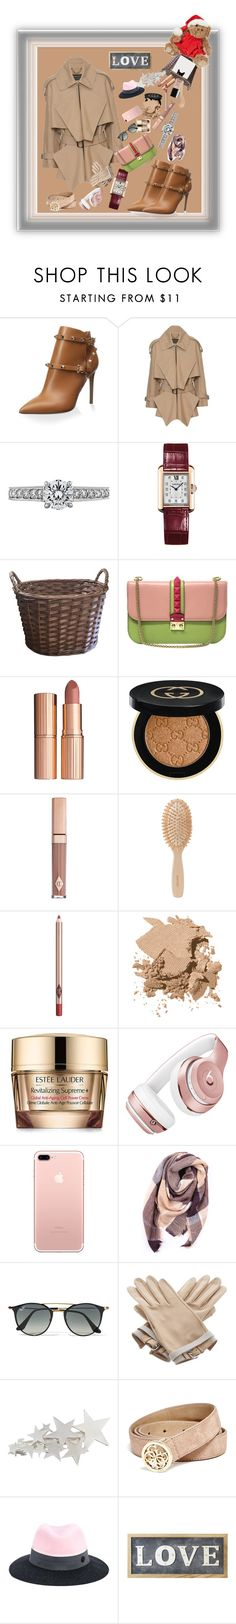 """""""Winter With Brown Coat Burberry"""" by donnyprabowo ❤ liked on Polyvore featuring Valentino, Burberry, Cartier, Charlotte Tilbury, Gucci, Meraki, Bobbi Brown Cosmetics, Estée Lauder, Beats by Dr. Dre and Everest"""